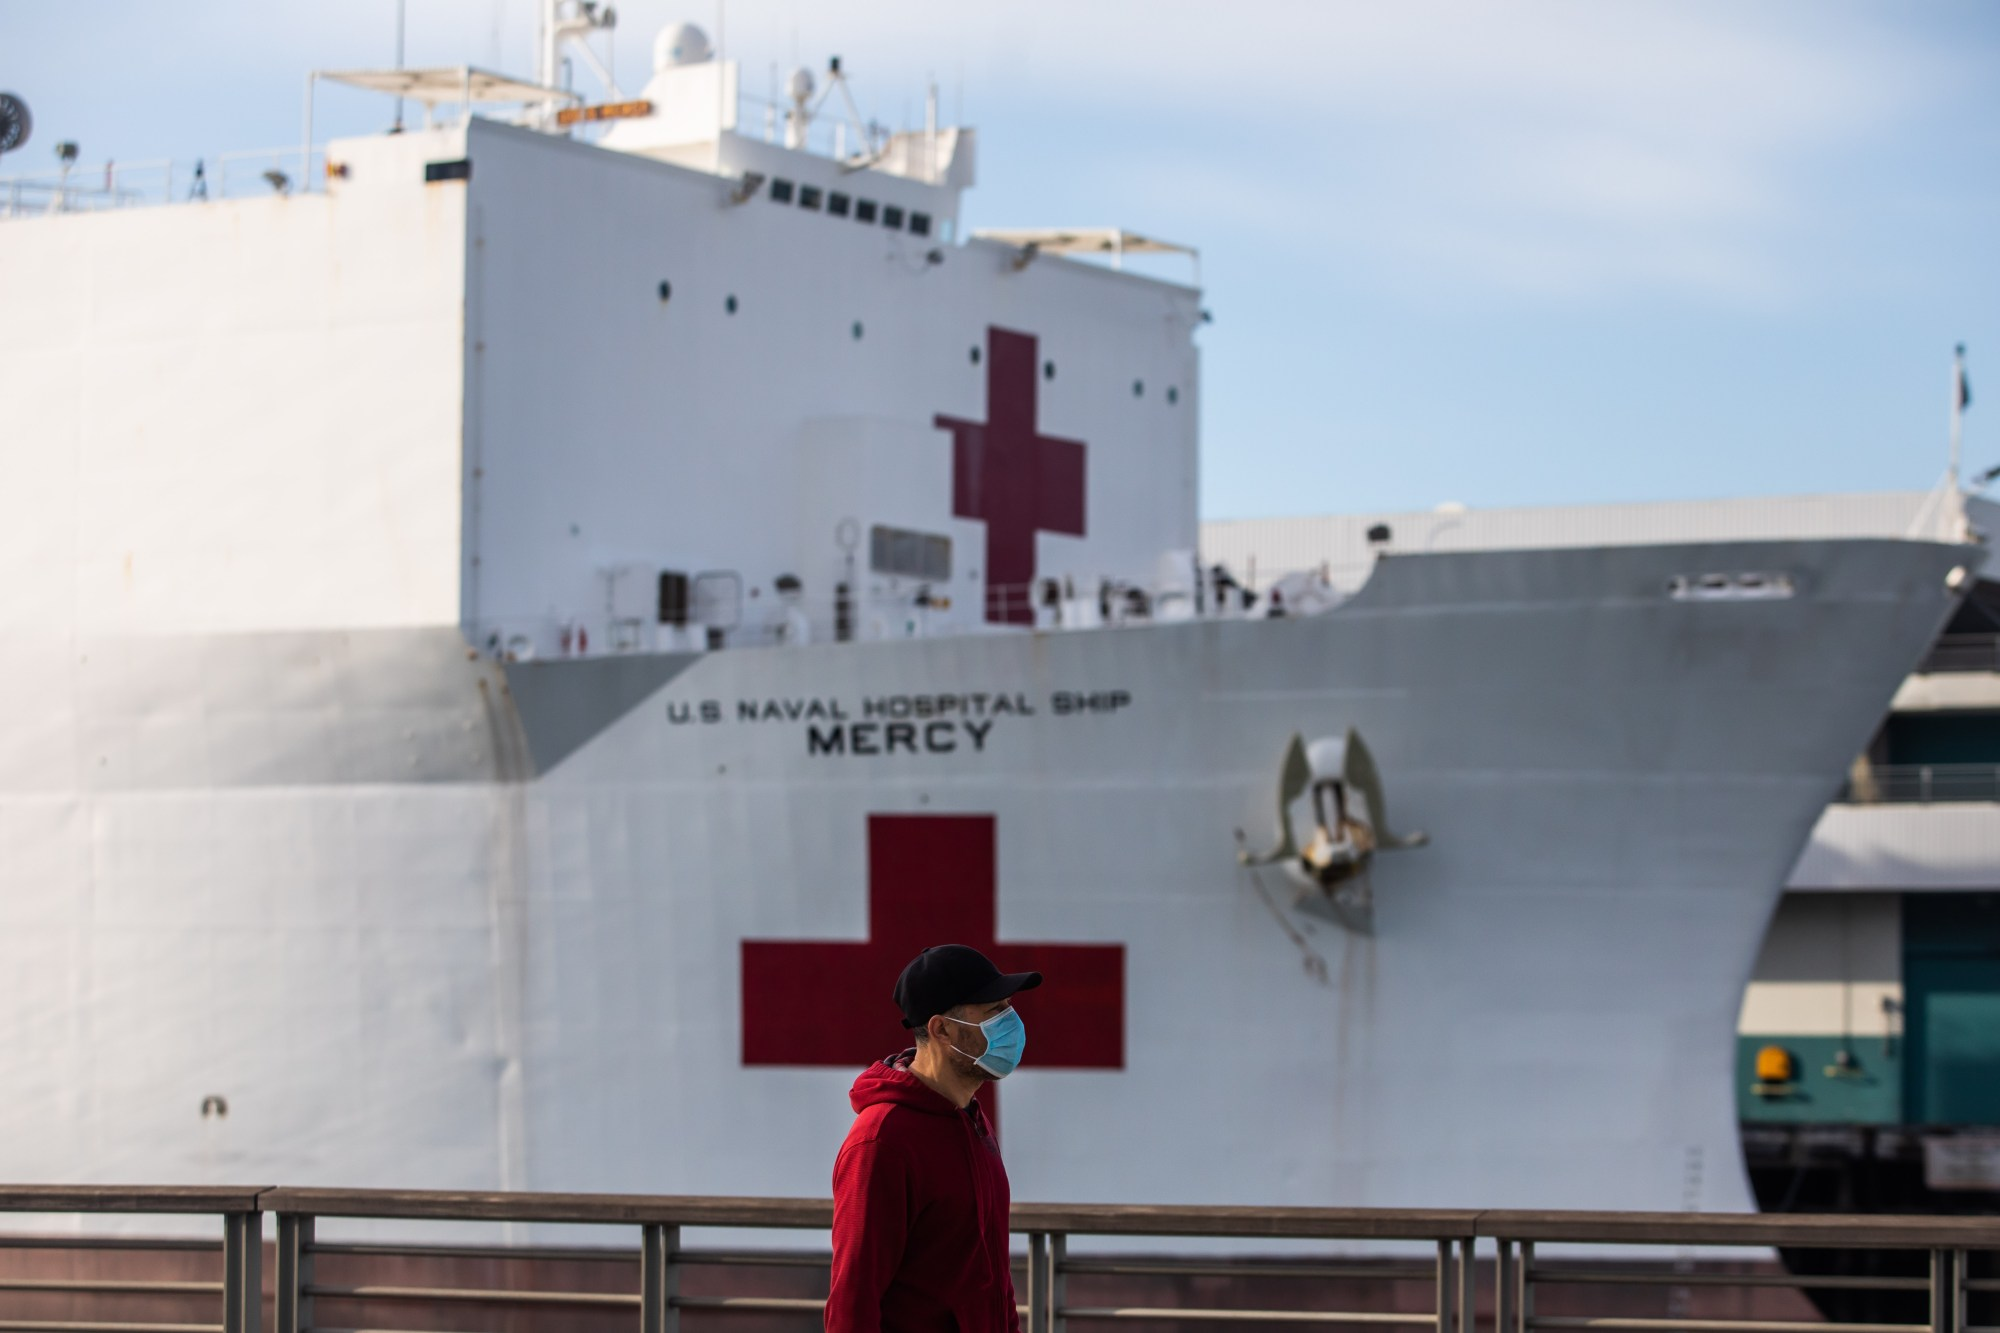 A man in a face mask walks past the U.S. Navy hospital ship, the USNS Mercy, on March 28, 2020, at the Port of Los Angeles in San Pedro. (Apu Gomes/AFP via Getty Images)